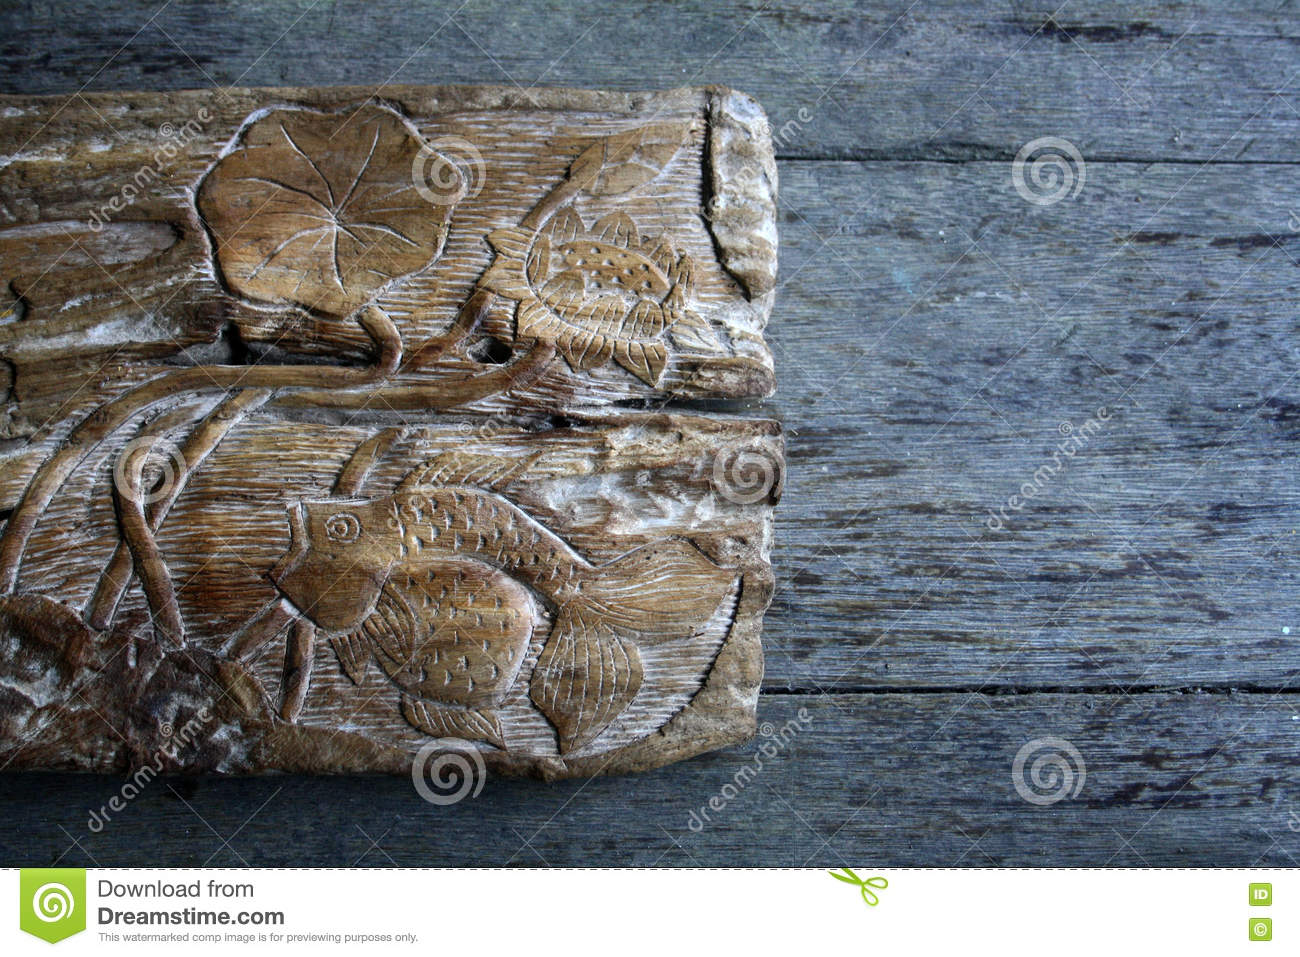 Fish wood carvings stock image image of stone golden